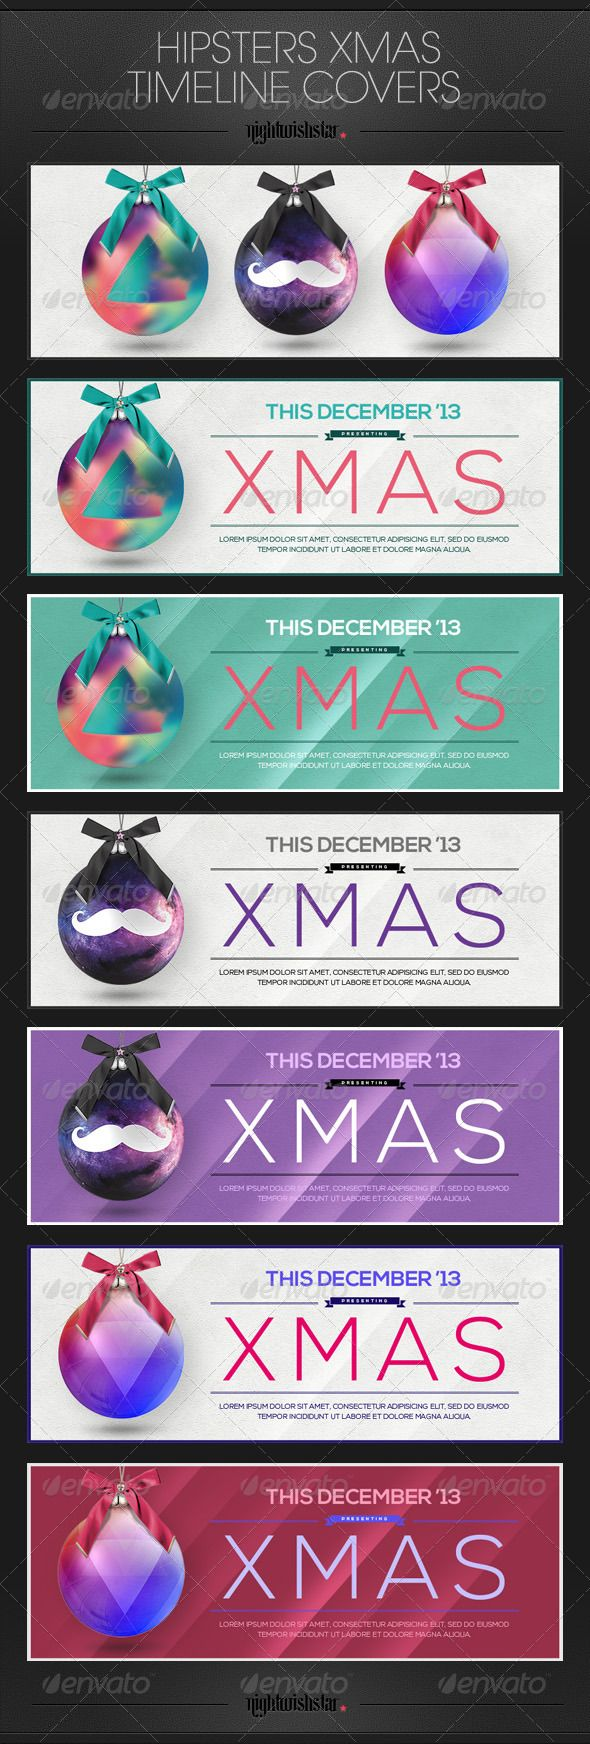 Hipster Christmas Facebook Timeline Covers — Photoshop PSD #stars #clean • Available here → https://graphicriver.net/item/hipster-christmas-facebook-timeline-covers/6321707?ref=pxcr